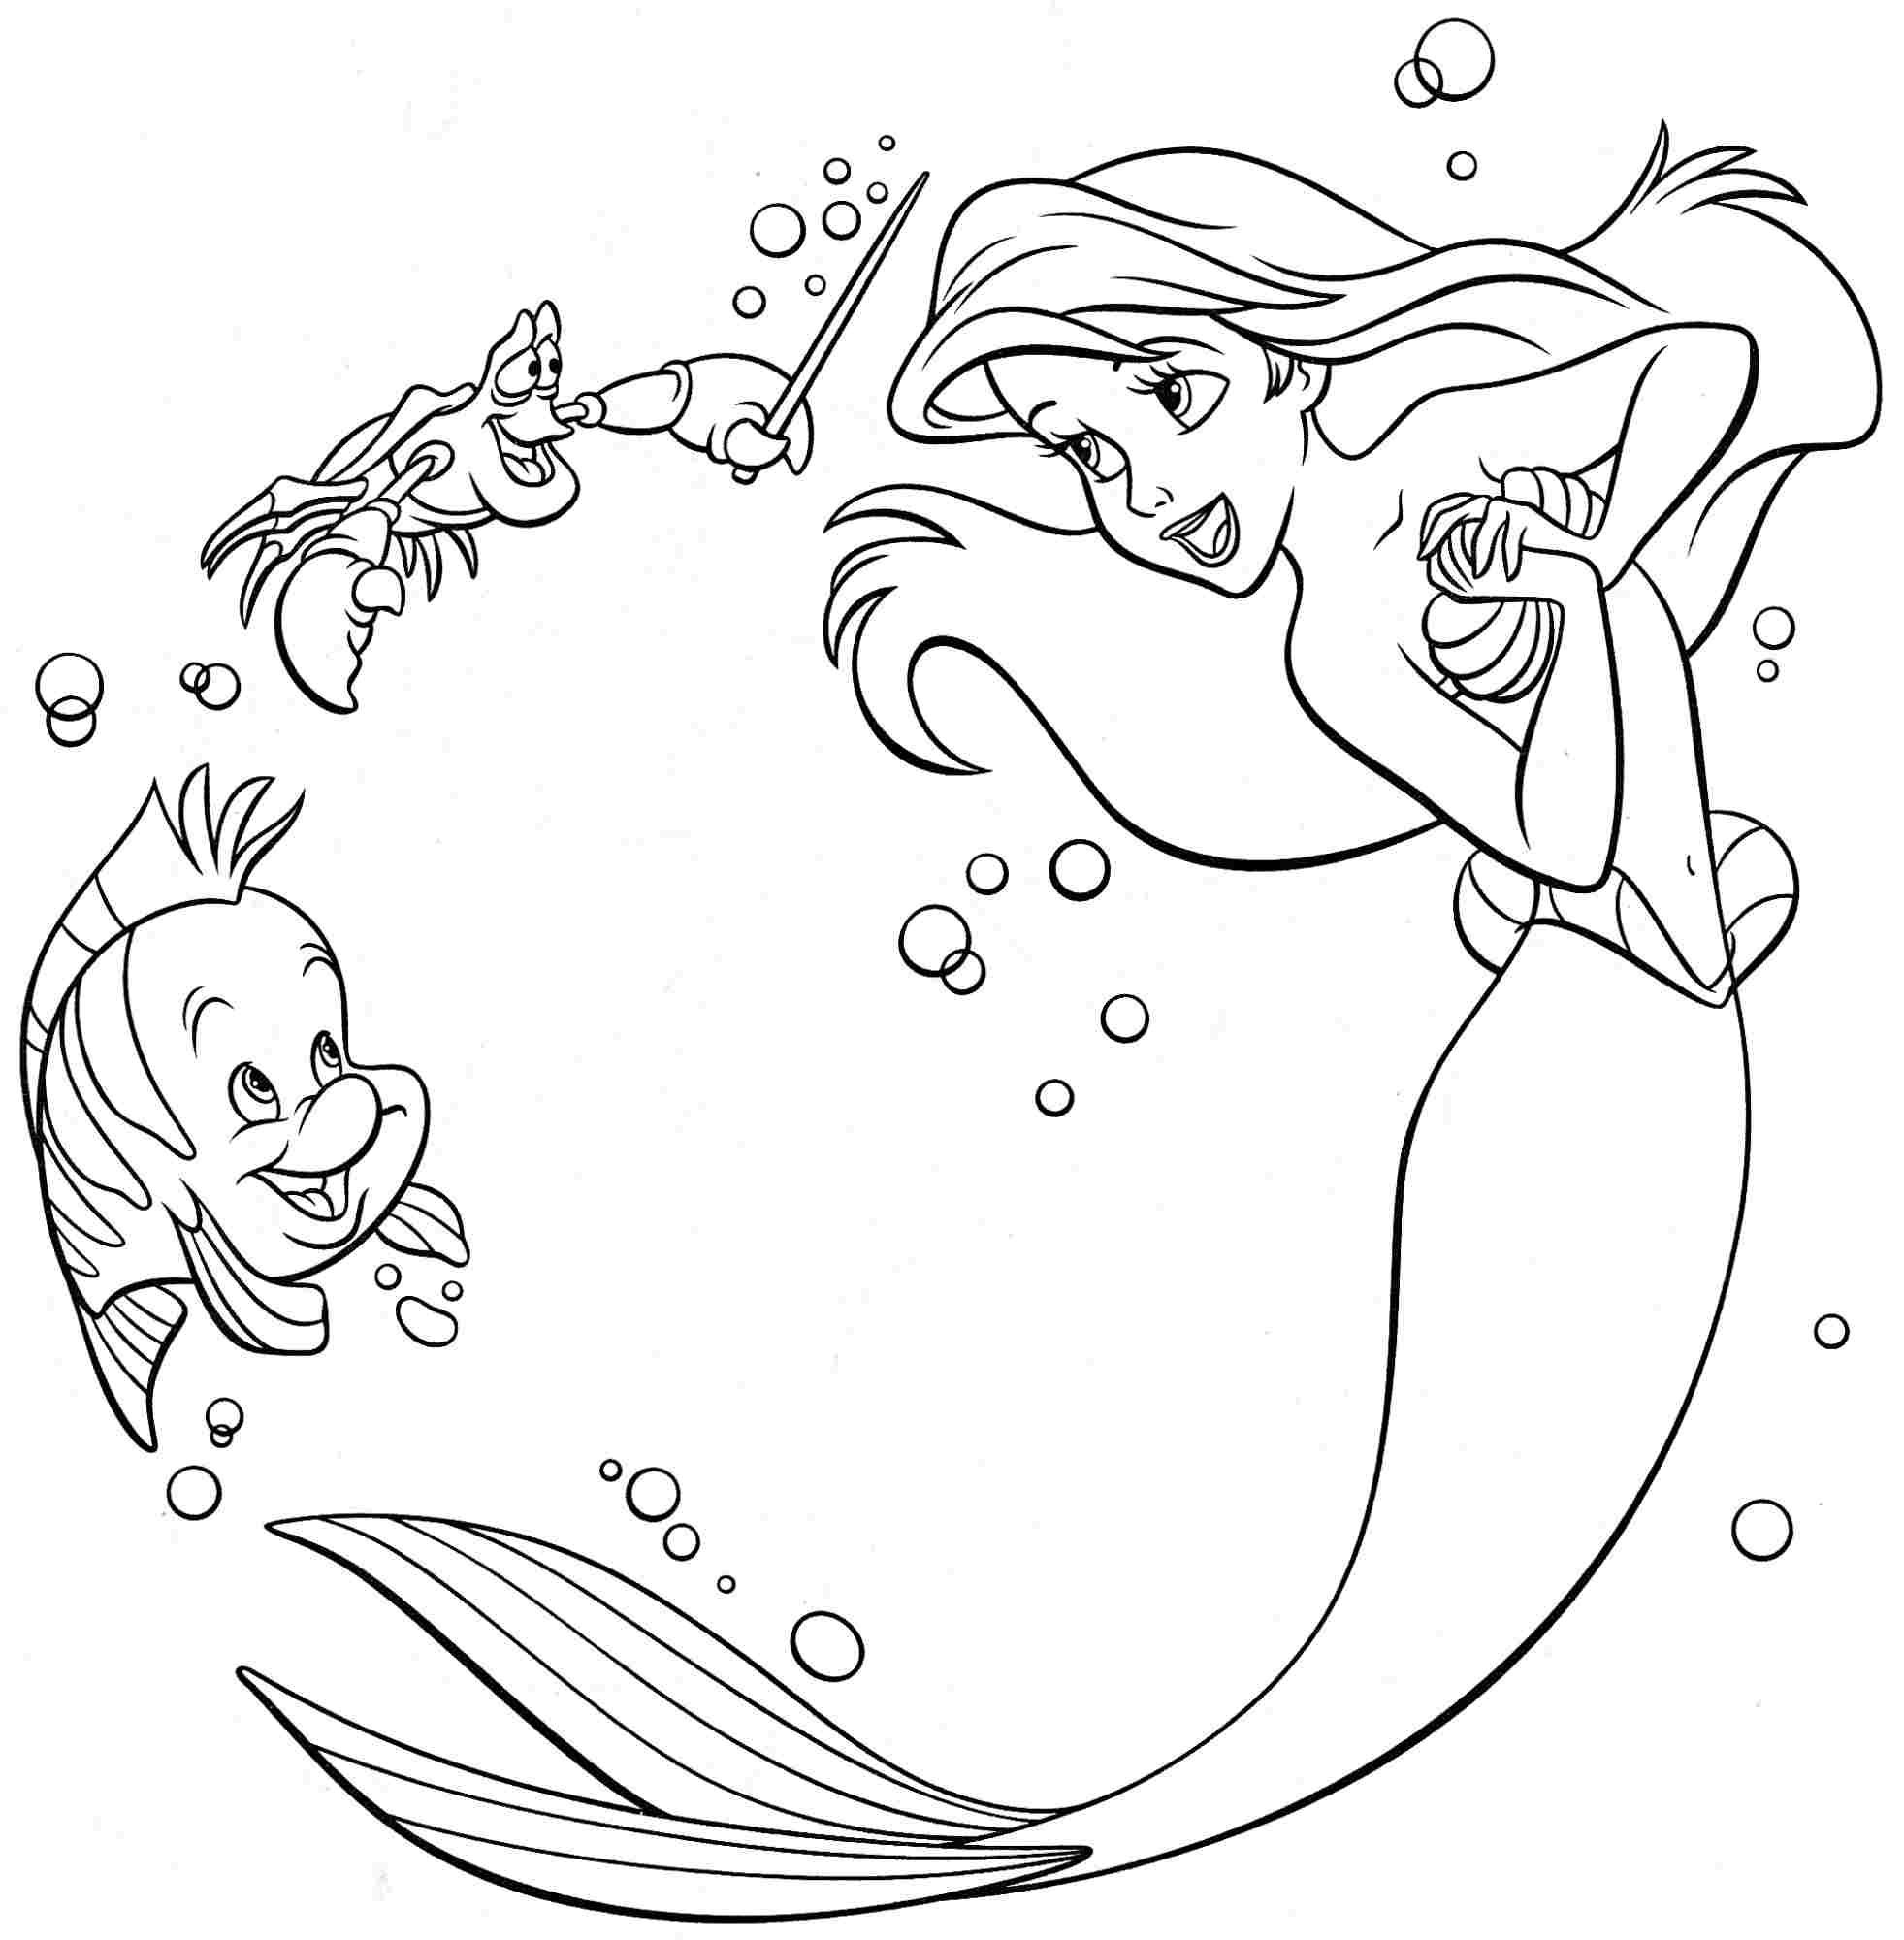 Disney Princess Mermaid Coloring Pages 249020 Disney Princess Ariel Coloring Pages Ariel Coloring Pages Mermaid Coloring Pages Mermaid Coloring Book